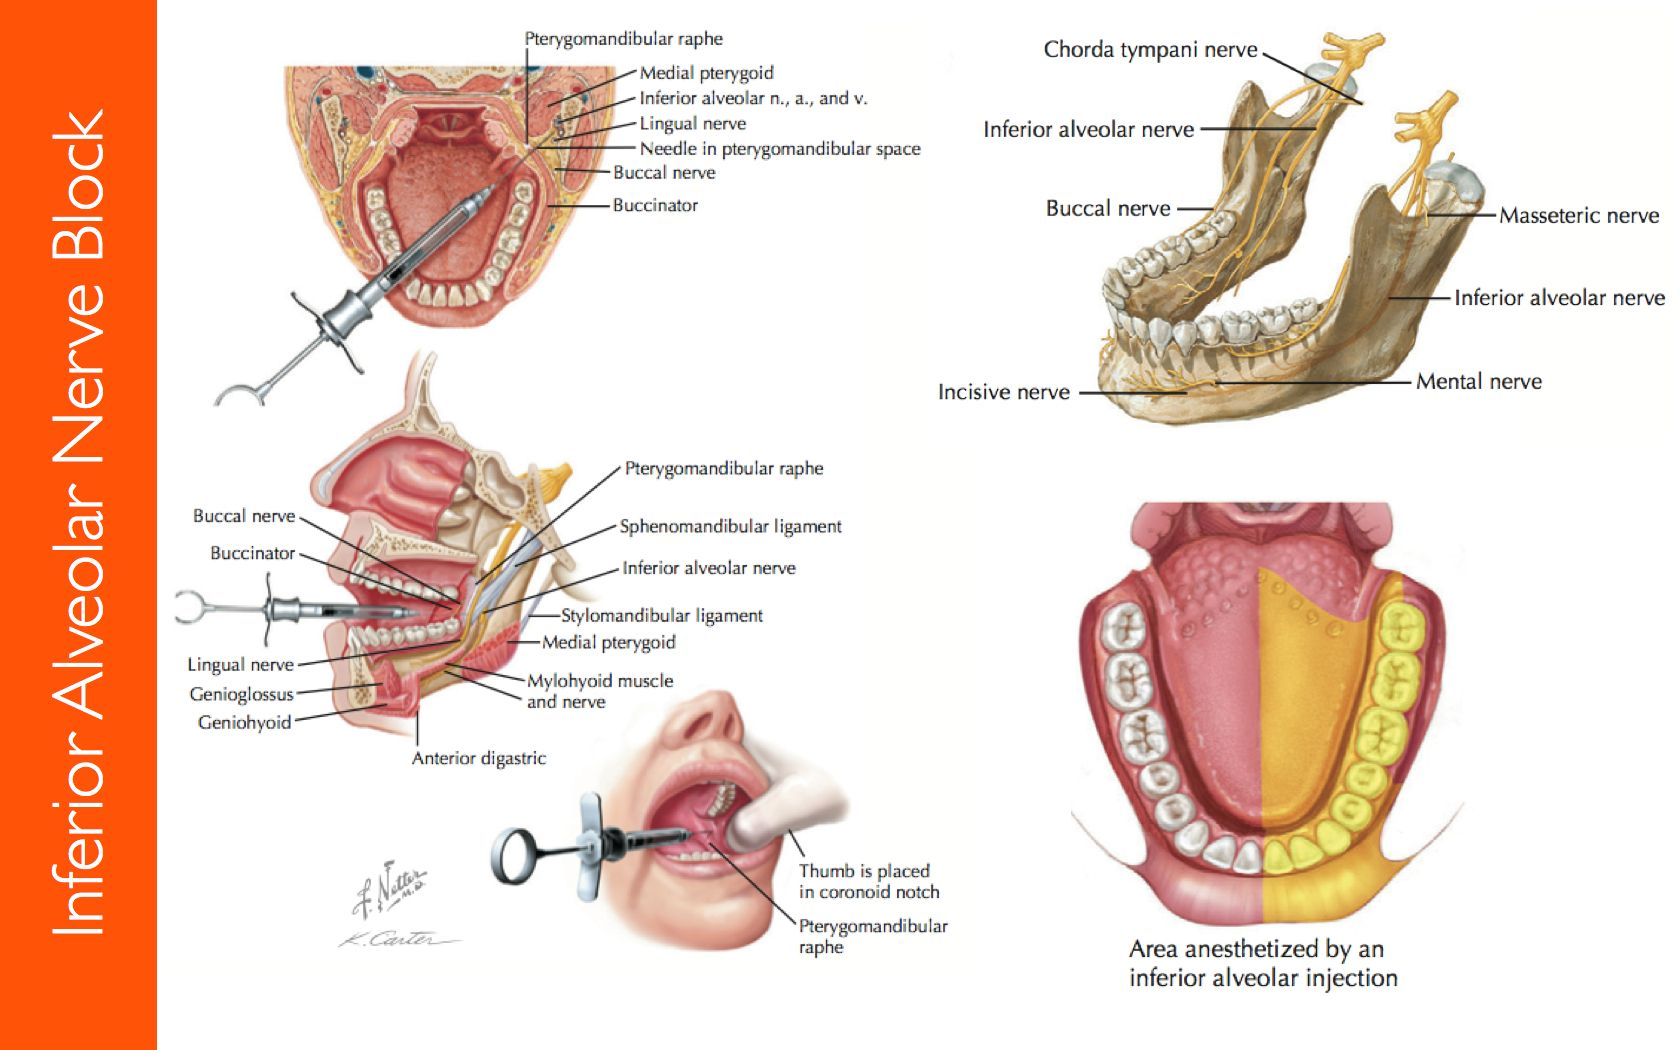 mandibular-nerves-block-1.jpg 1,680×1,050 pixels | 2nd semester ...